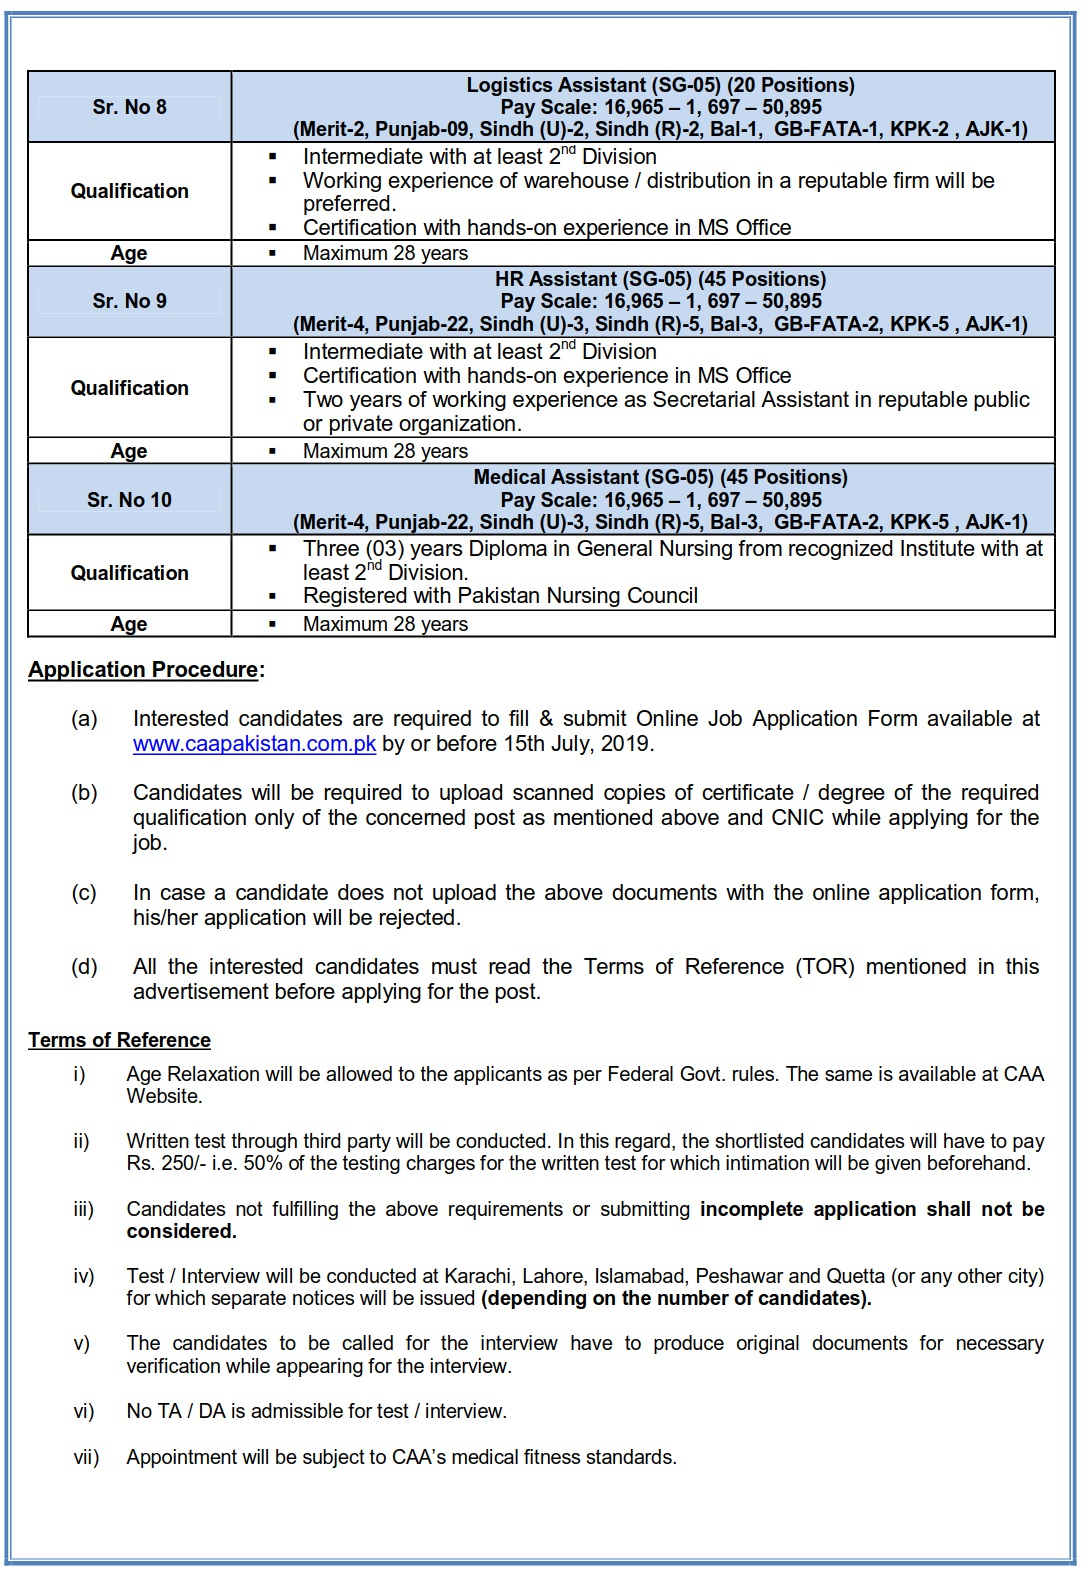 Civil Aviation Authority Jobs 2019 July Apply Online Accounts Assistant IT Assistant & Others – Latest Jobs